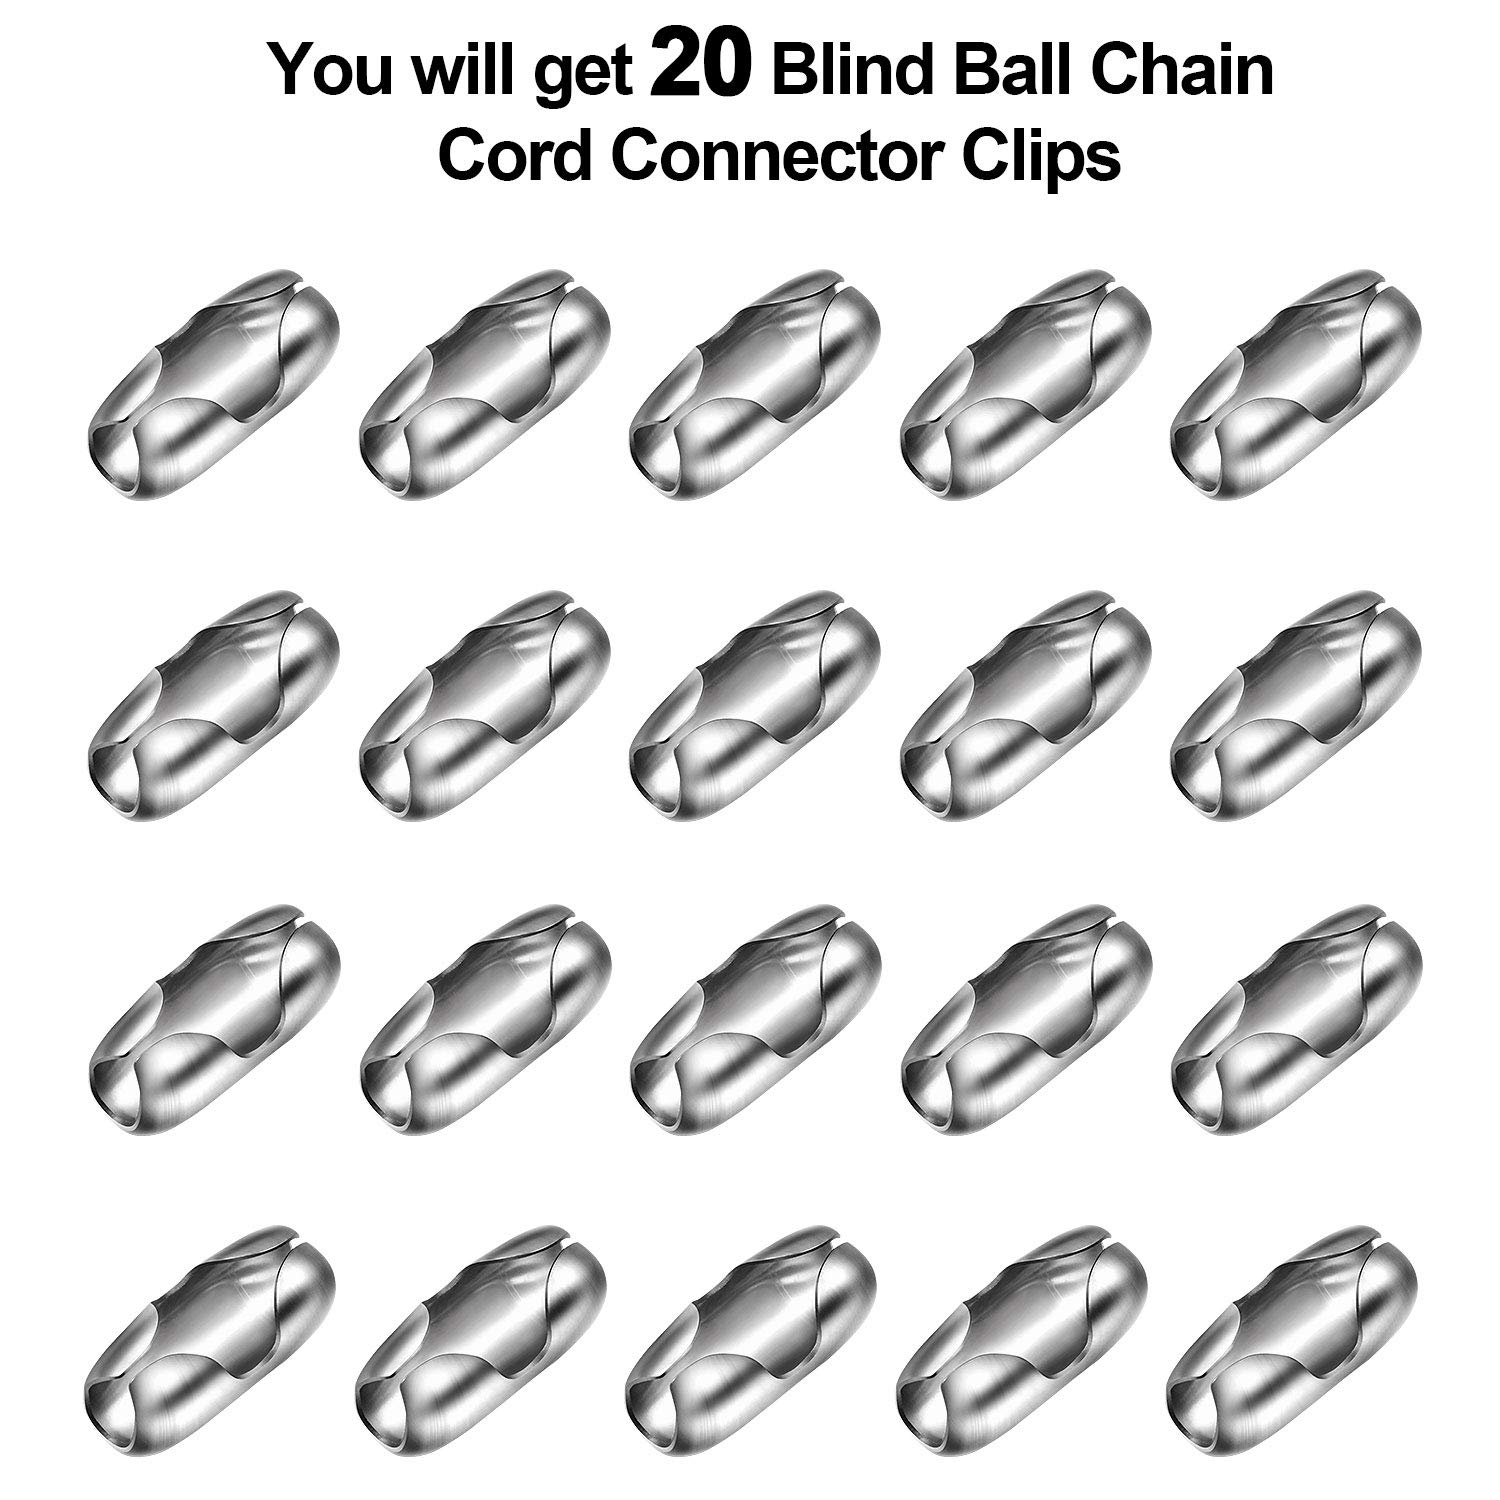 Pangda 20 Pack Replacement Vertical Roman Roller Blind Ball Chain Cord Connector Clips Stainless Steel